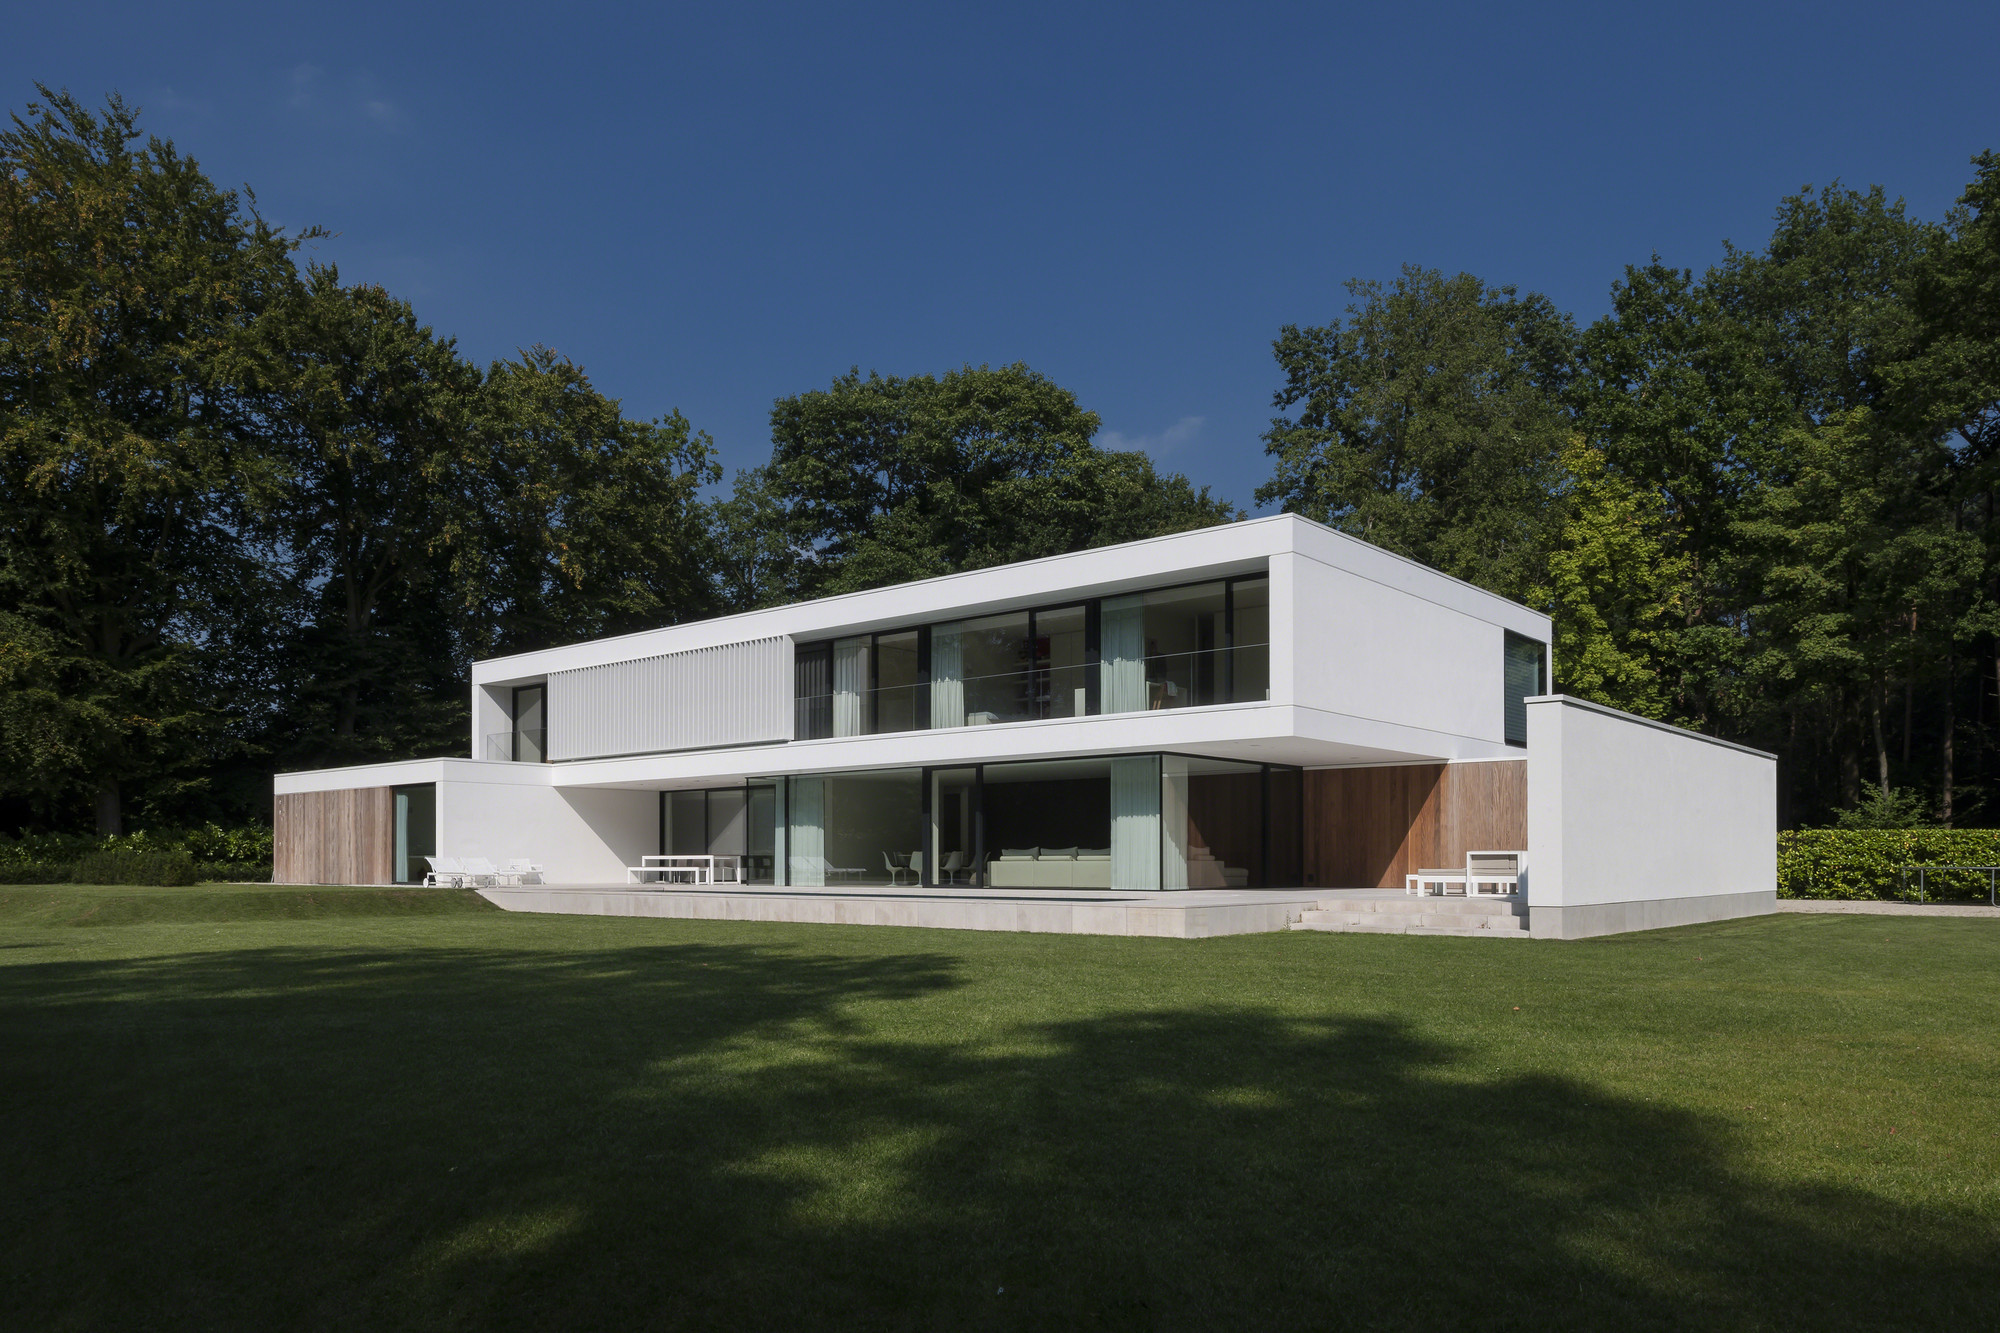 Galer a de casa hs cubyc architects 1 for B isdn architecture